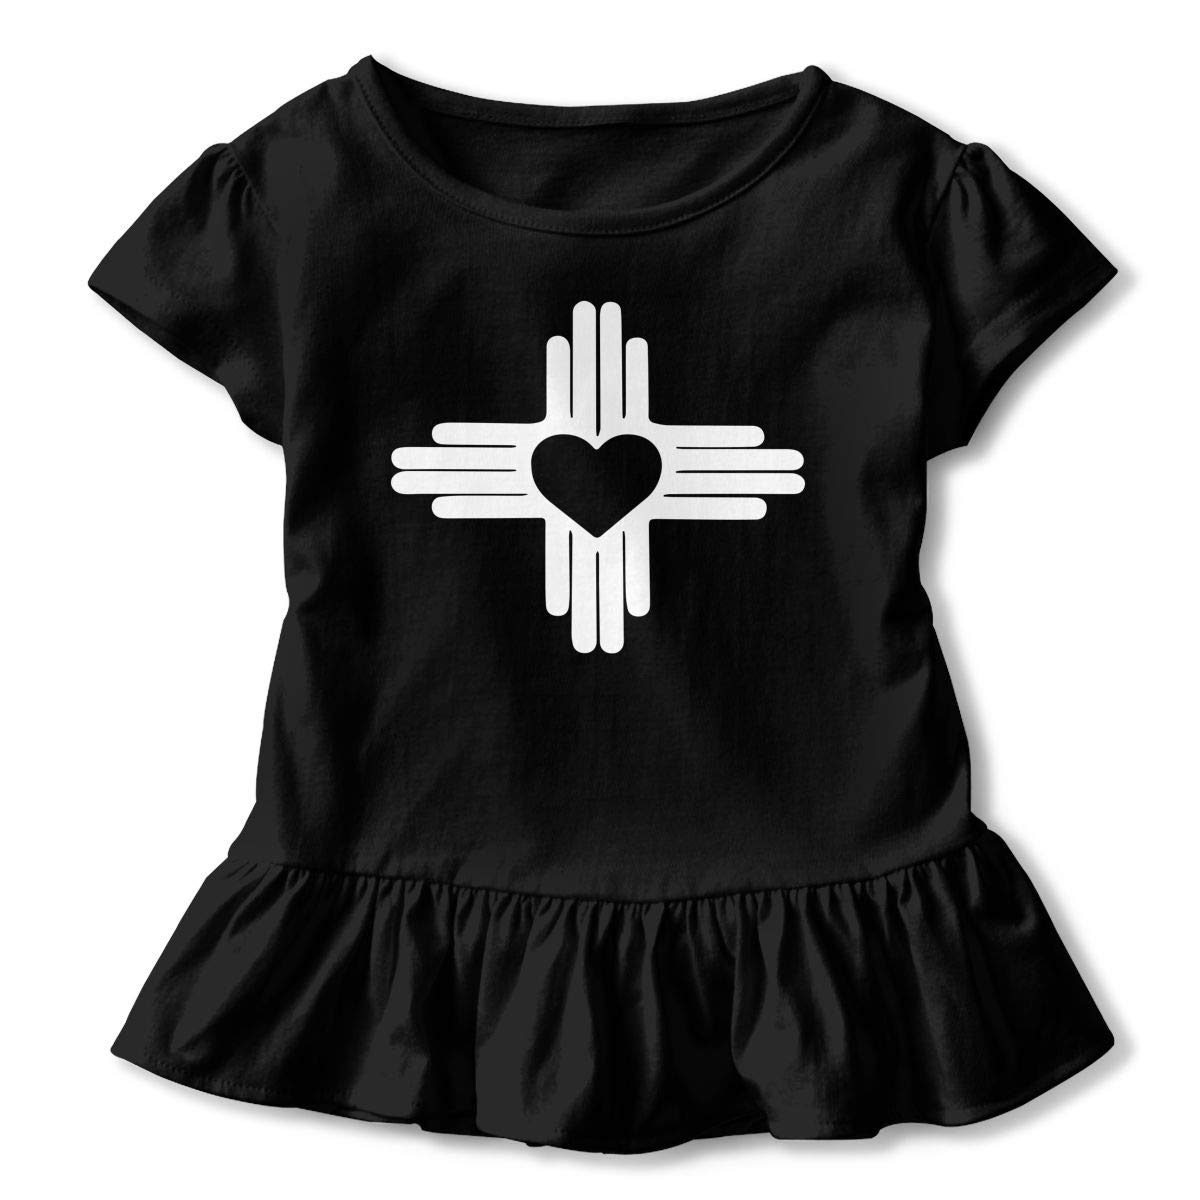 HYBDX9T Toddler Baby Girl New Mexico State Flag Heart Symbol Funny Short Sleeve Cotton T Shirts Basic Tops Tee Clothes